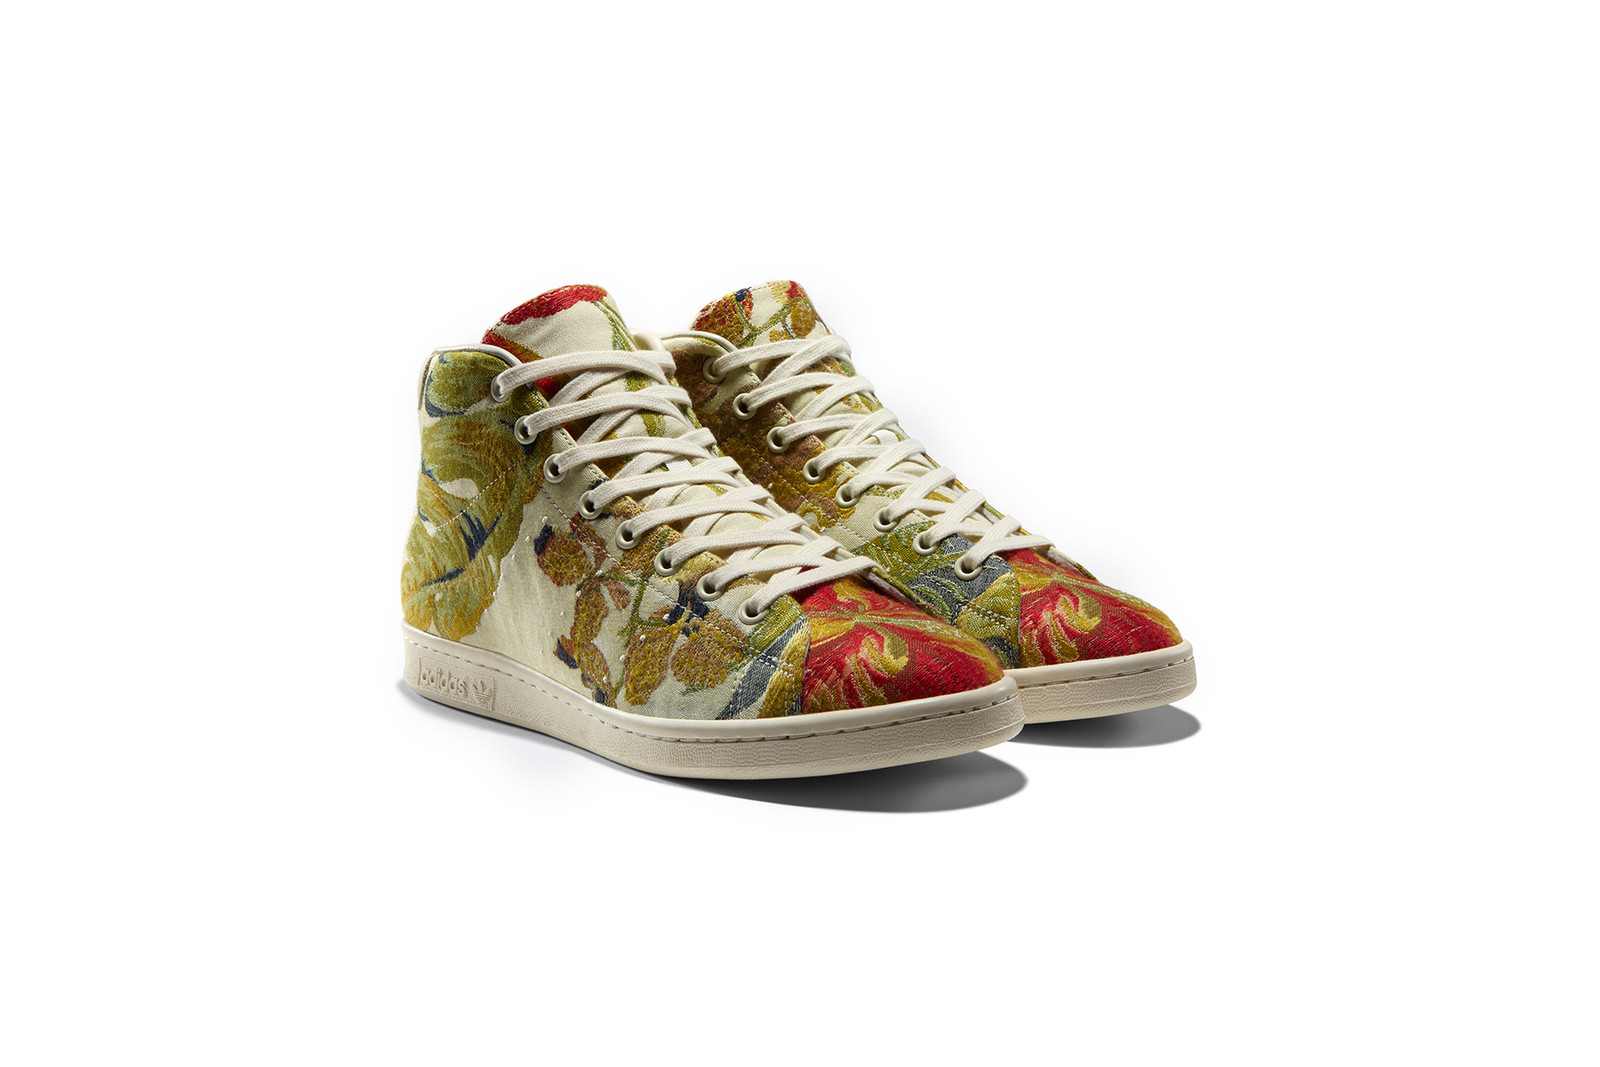 adidas Originals Pharrell Williams Jacquard Pack 2.0